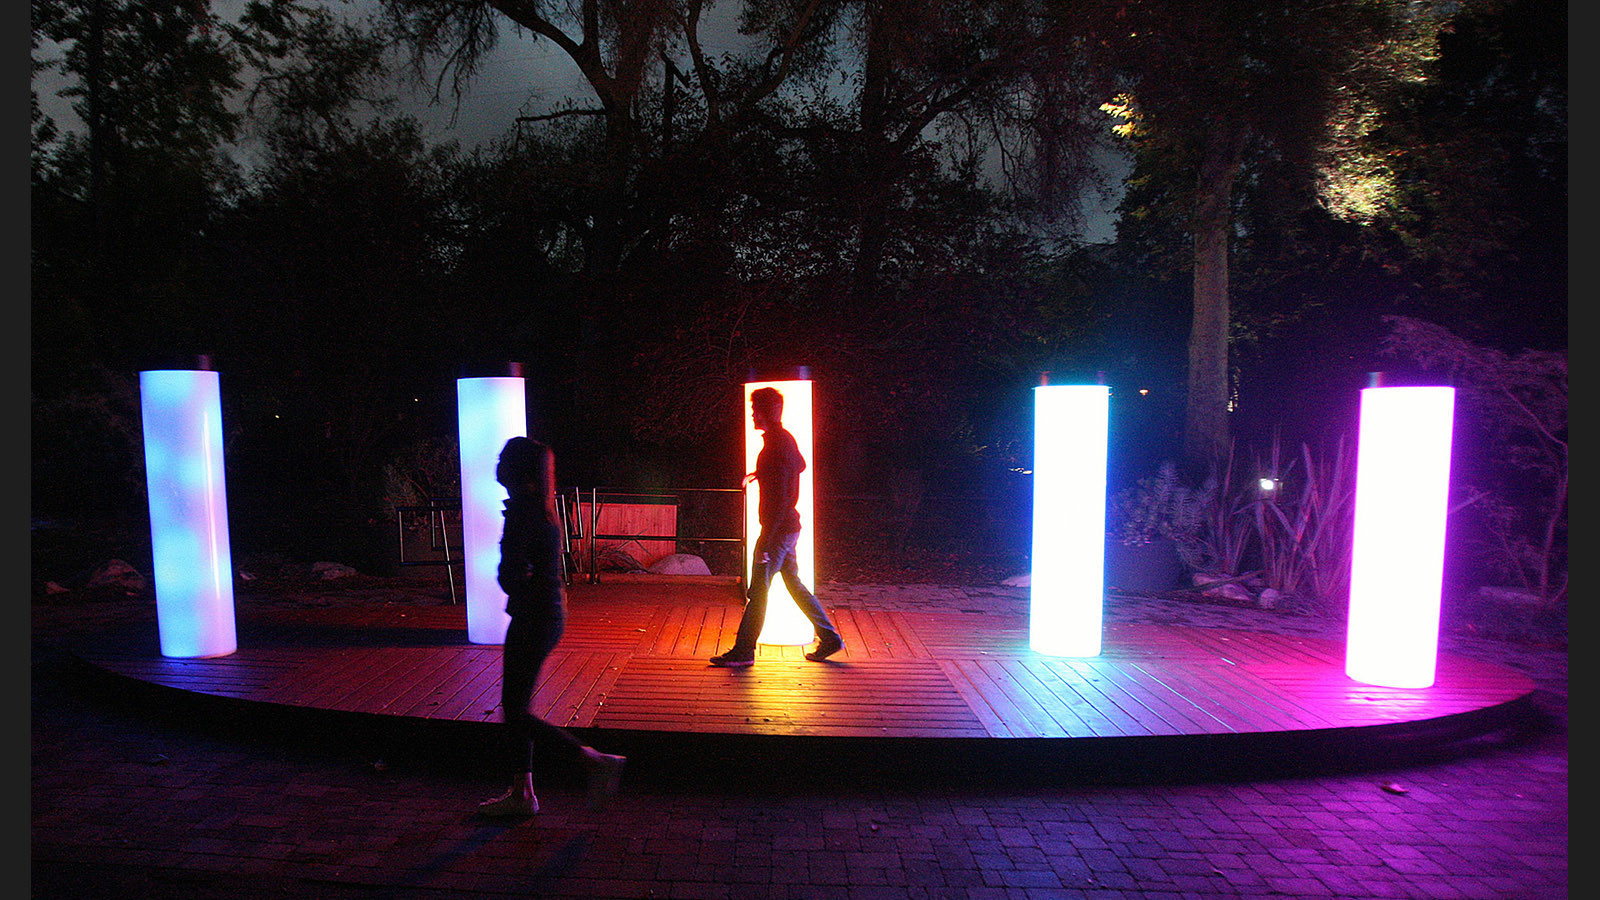 Descanso gardens teams with designers to create stunning - Descanso gardens enchanted forest of light ...